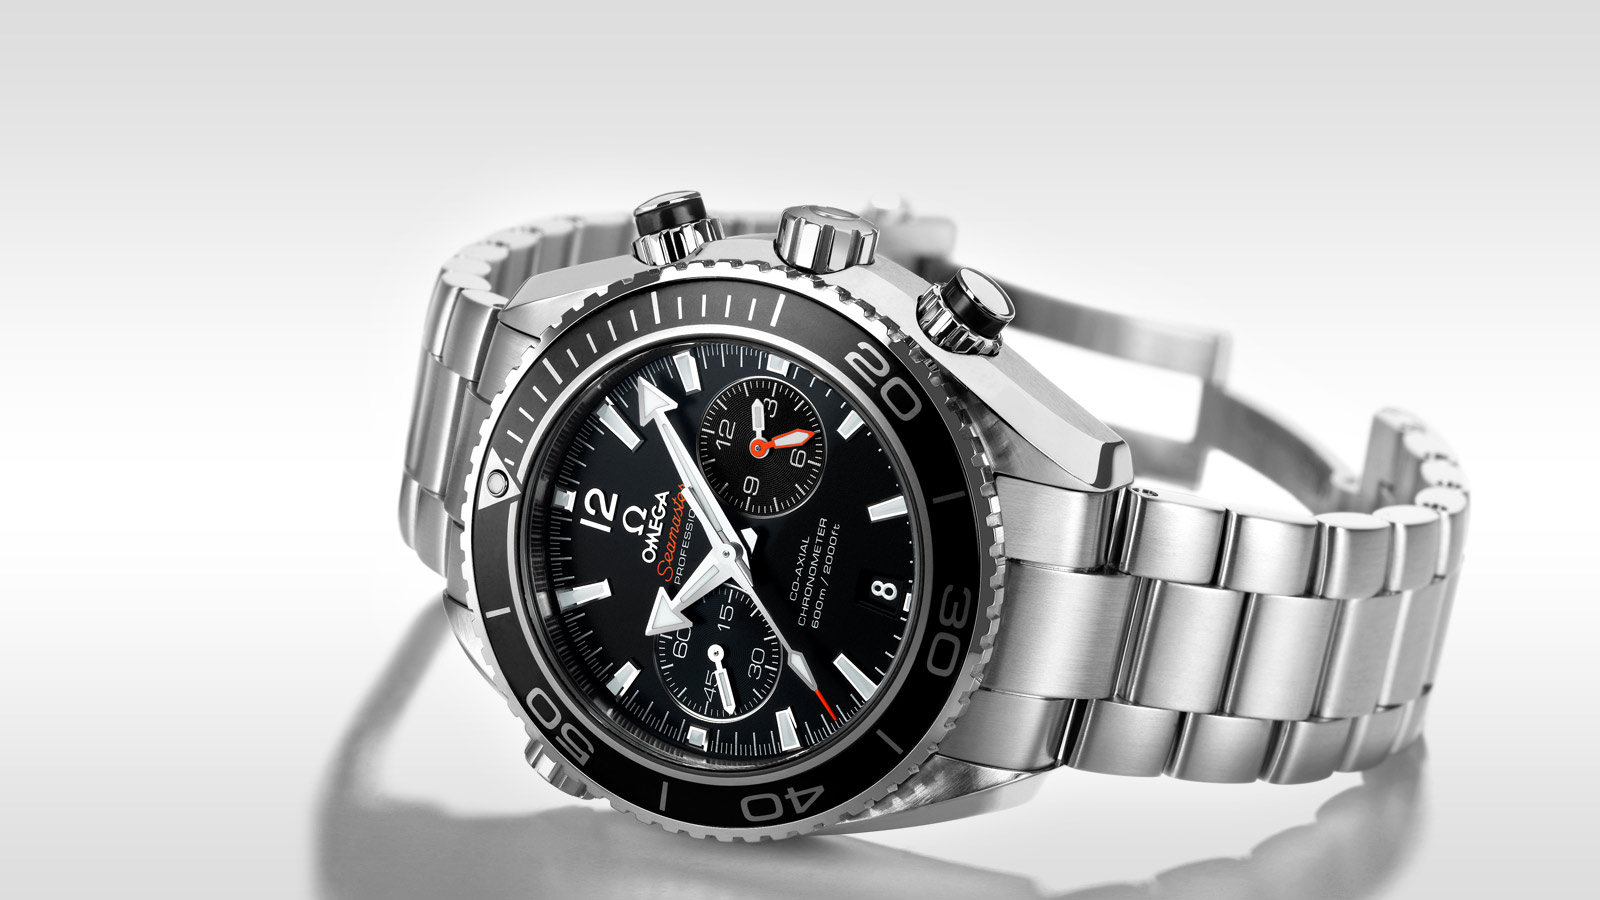 Seamaster Planet Ocean 600M Planet Ocean 600M Omega Co‑Axial Chronograph 45.5 mm - 232.30.46.51.01.001 - View 1